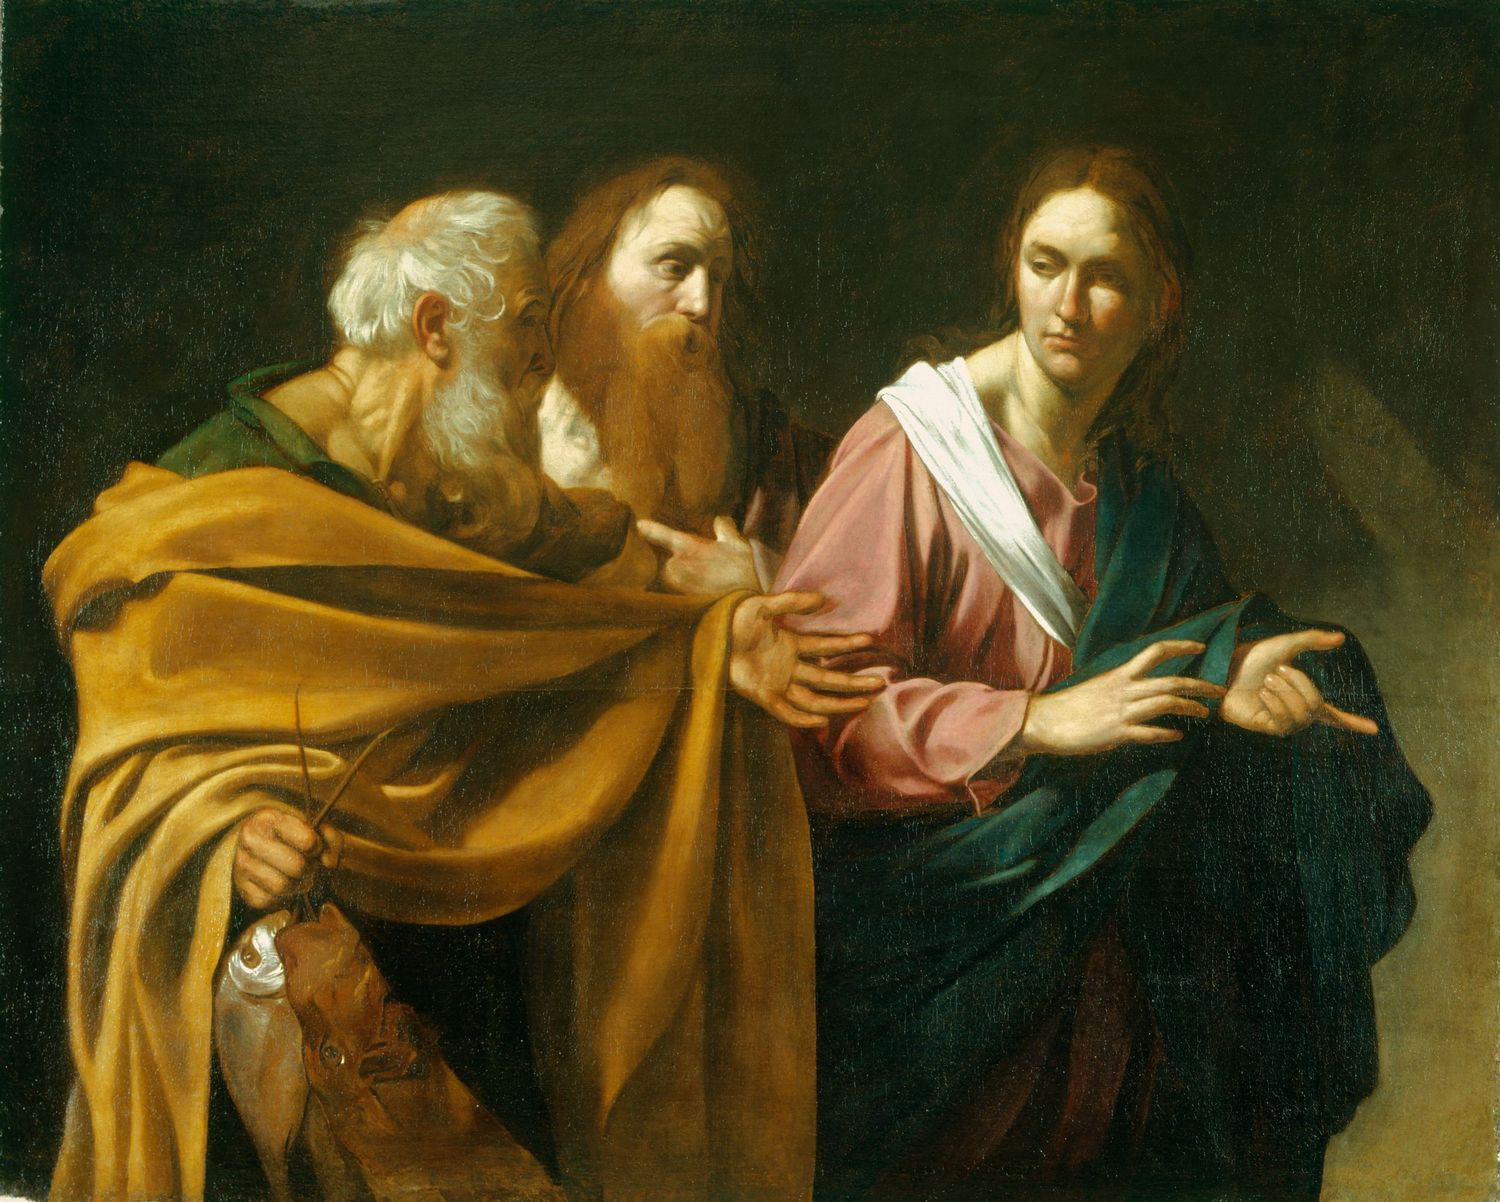 The Calling of Saints Peter and Andrew c. 1602-4. Oil on canvas.